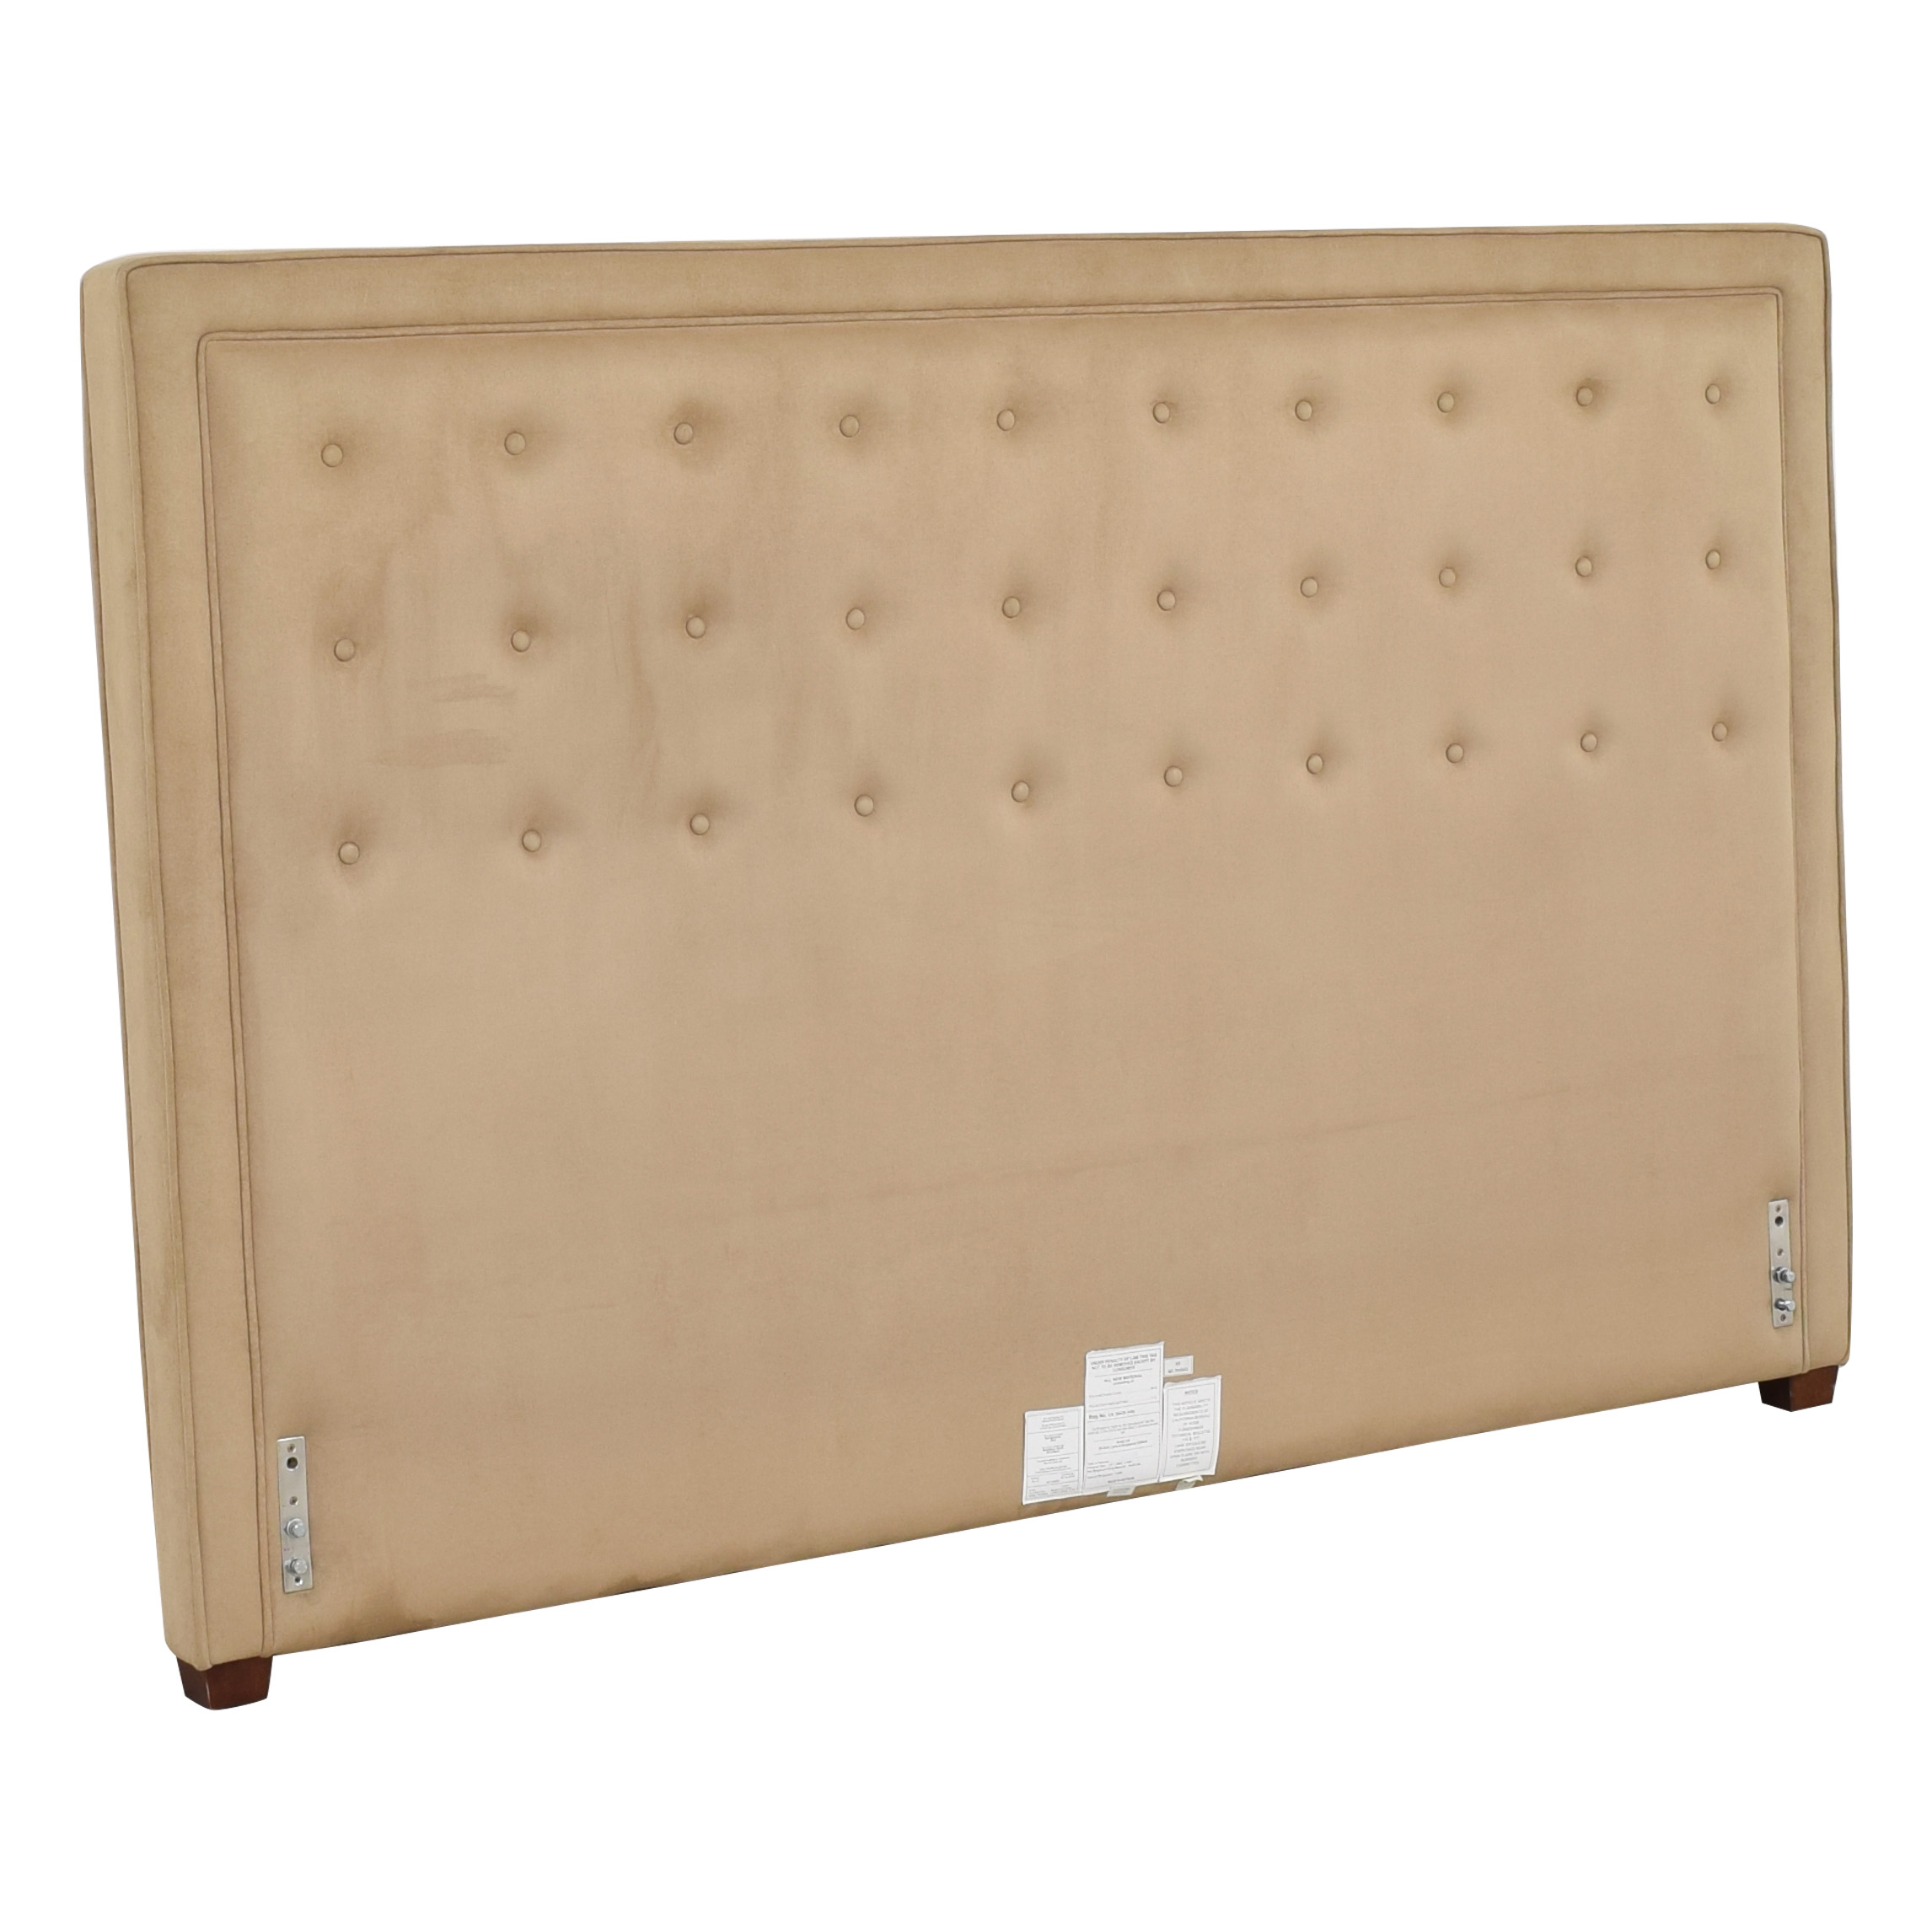 Pottery Barn Pottery Barn Georgetown Tufted Headboard price